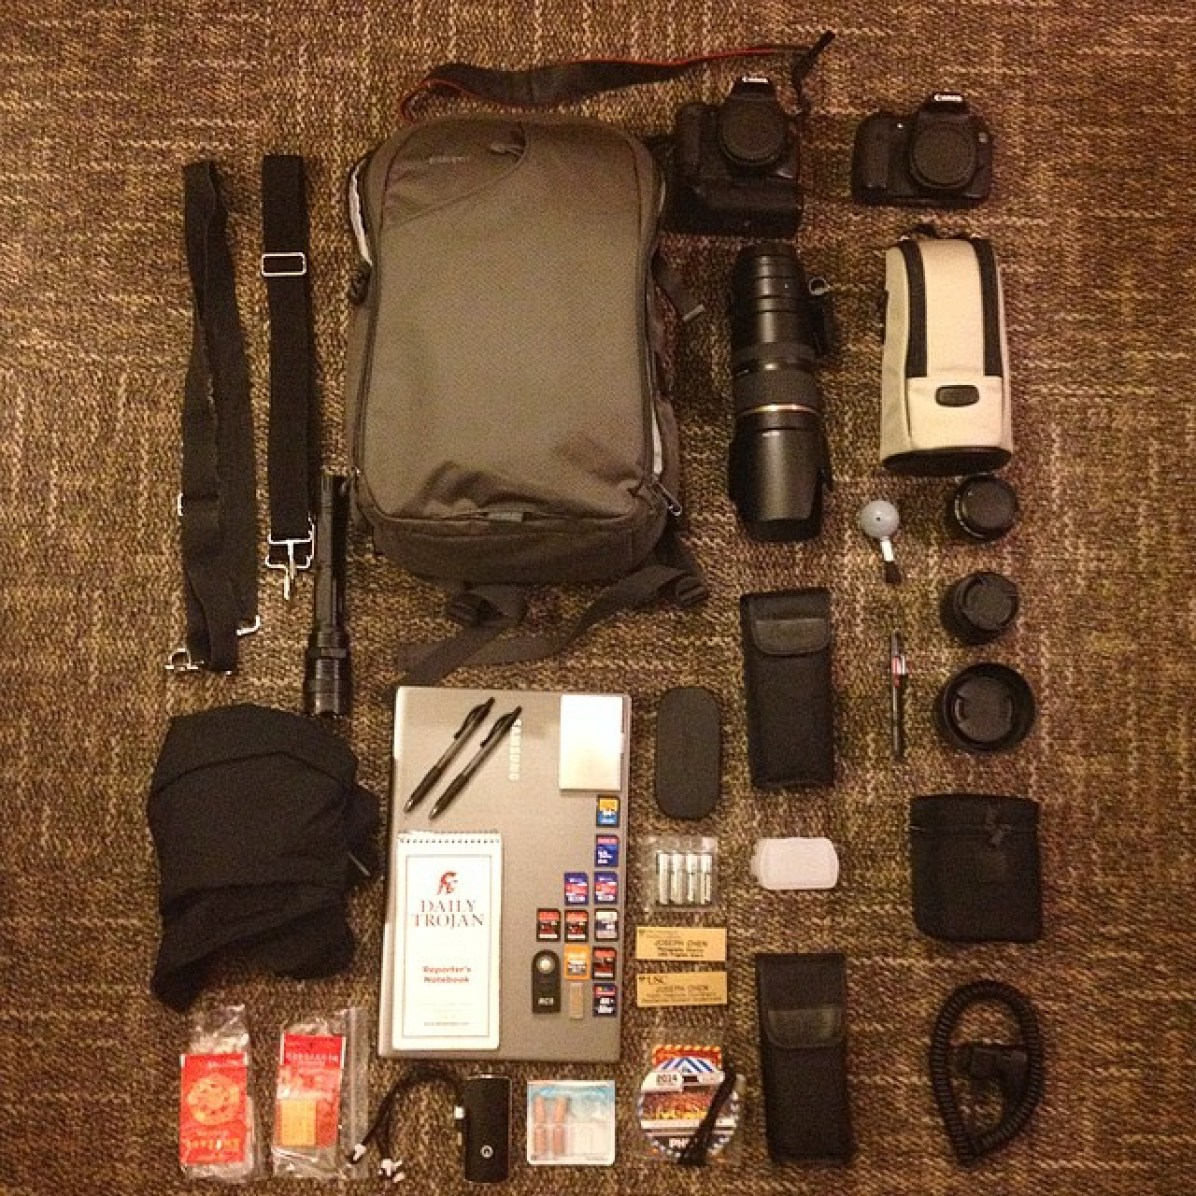 The typical camera bag for your local, insane, photographer.